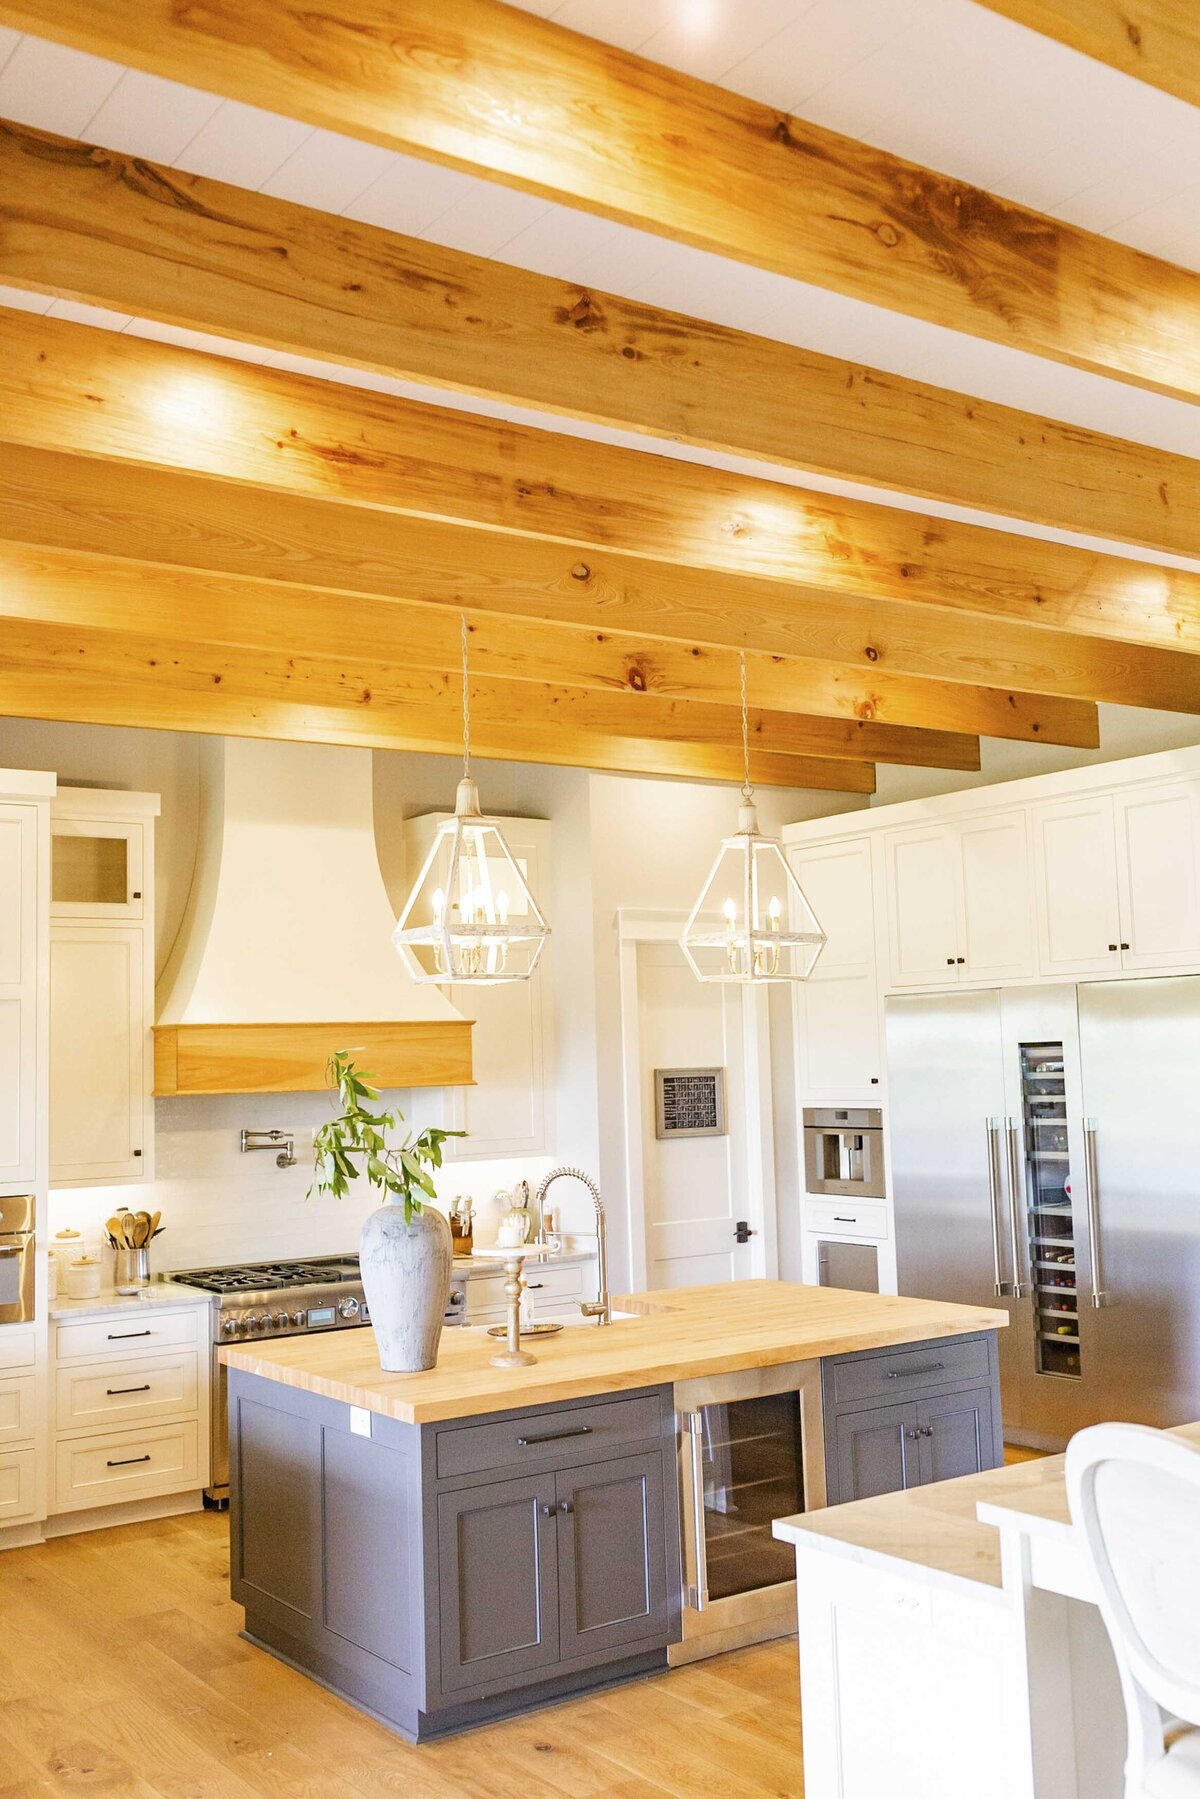 kitchen-wood-beams-white-cabinets-grey-island5